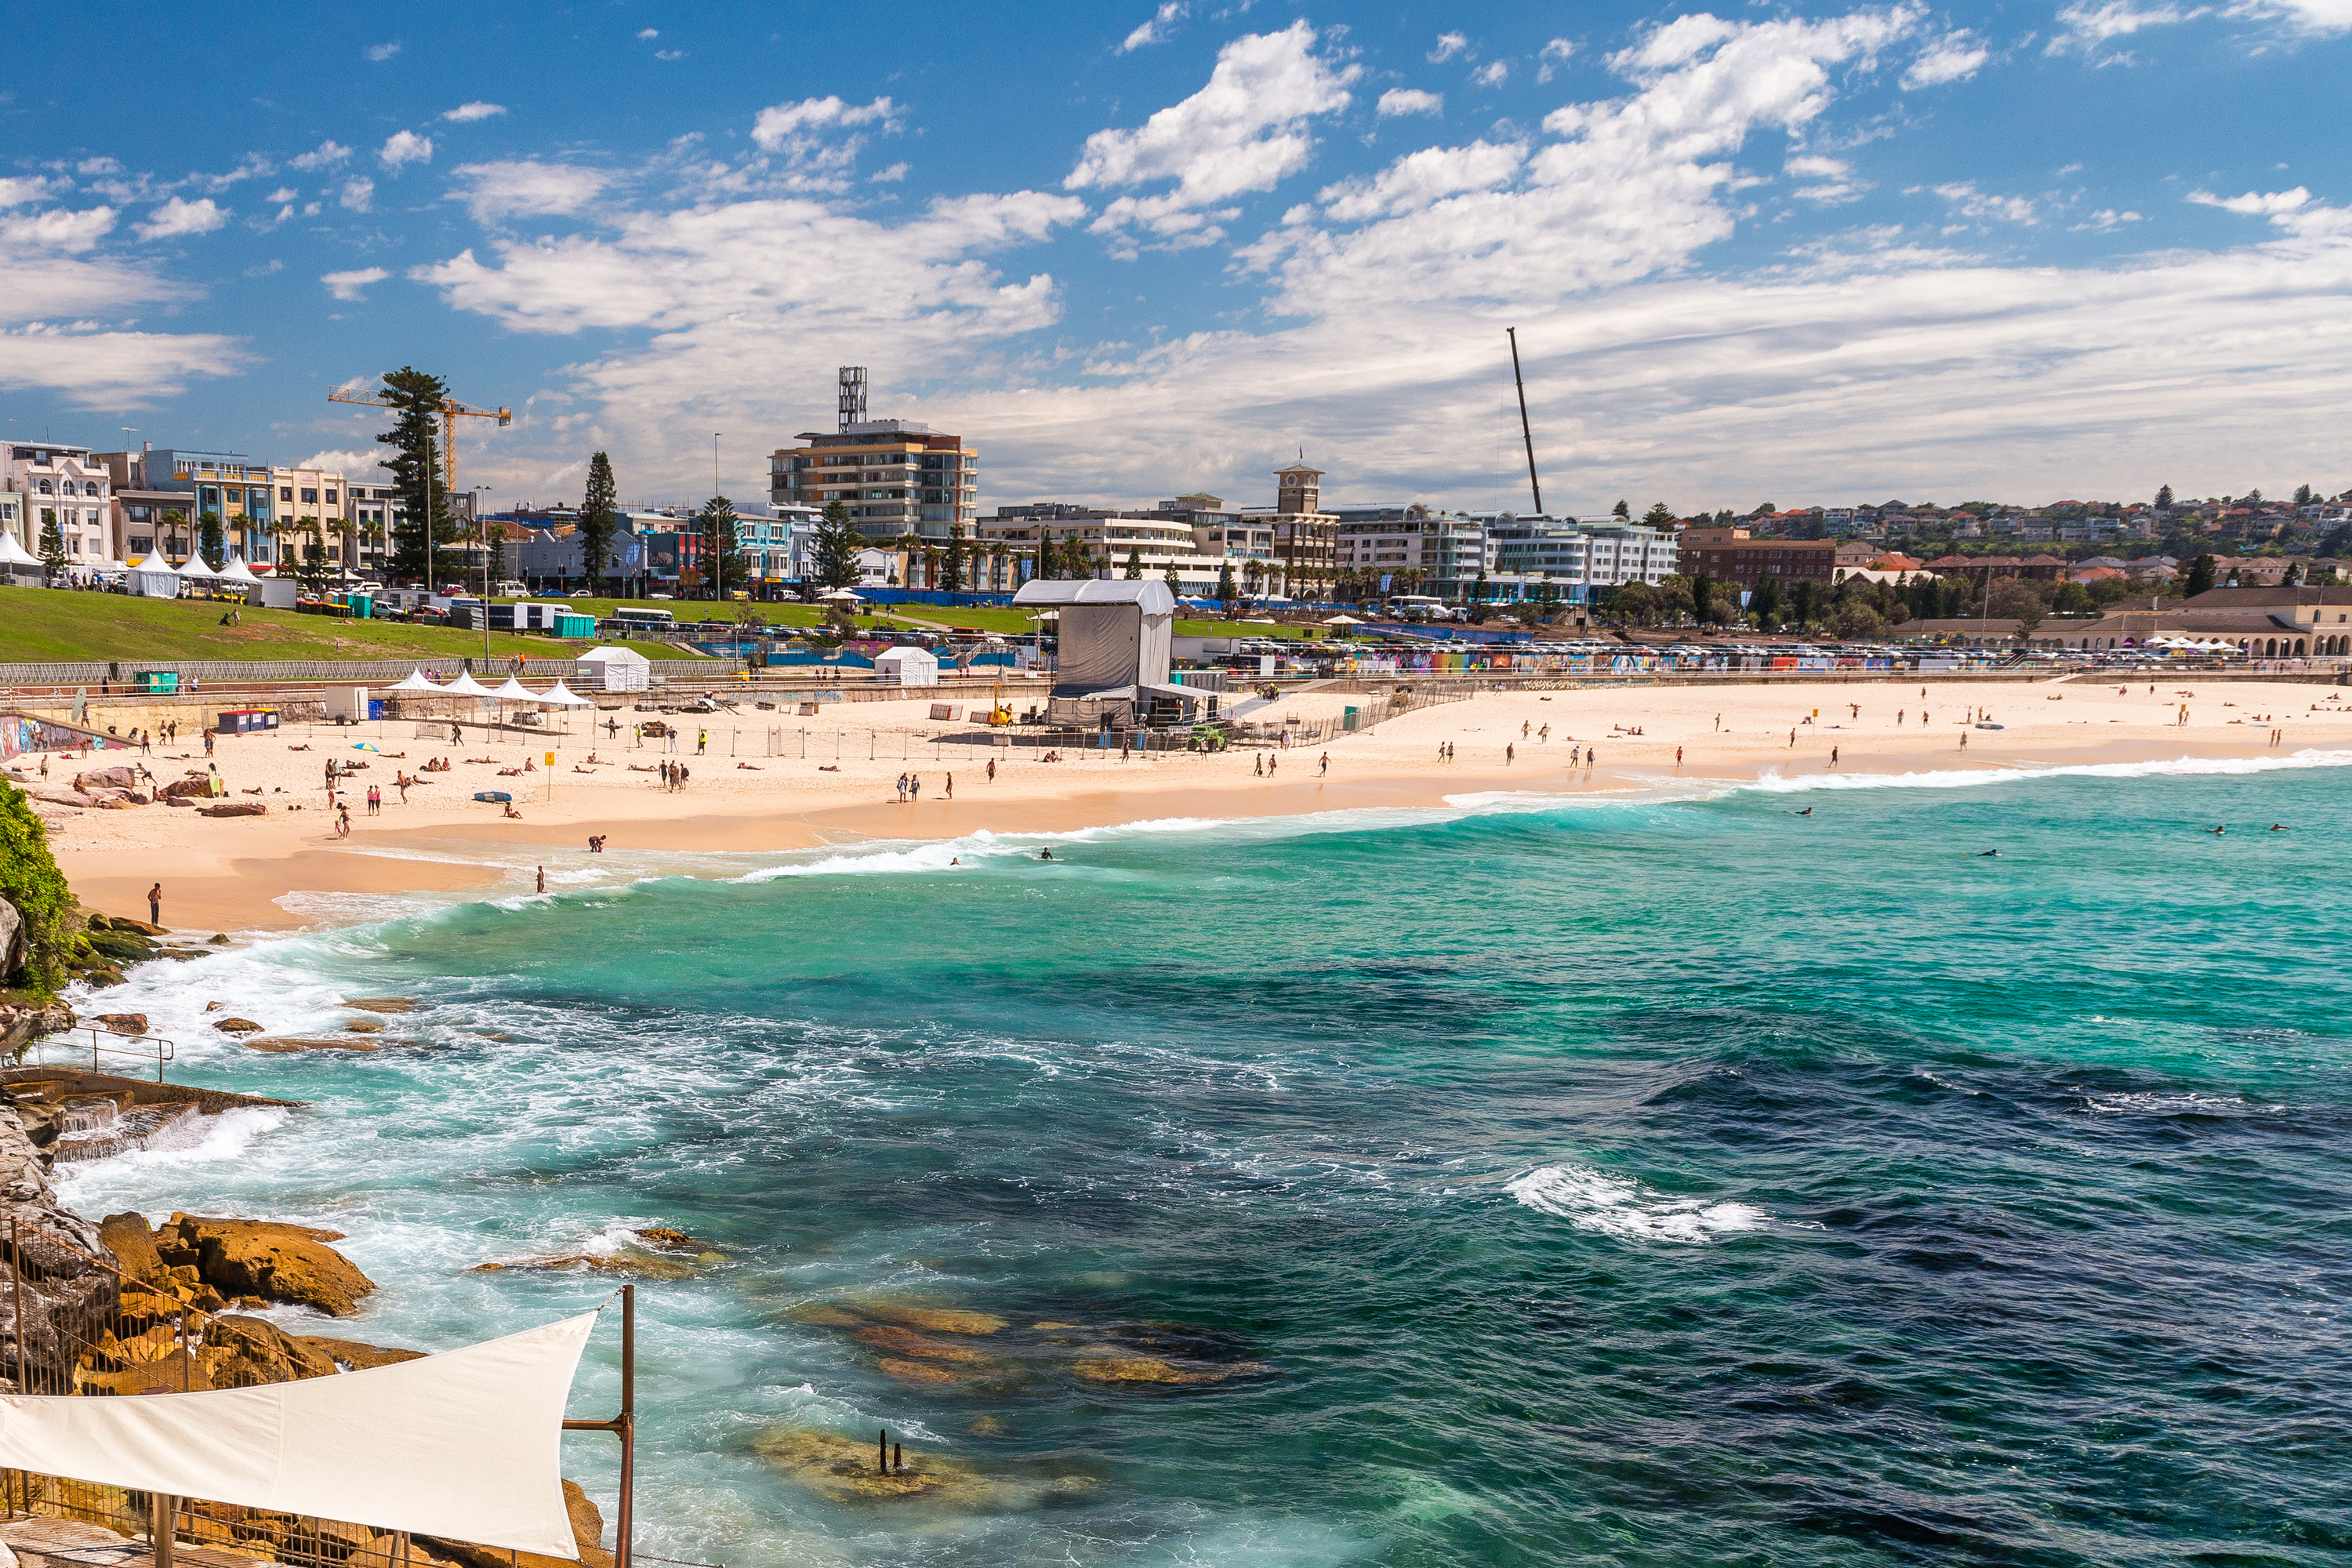 If you're taking a trip down under, you need to go to Bondi Beach! Here's everything you need to know about Bondi Beach. You will fall in love!